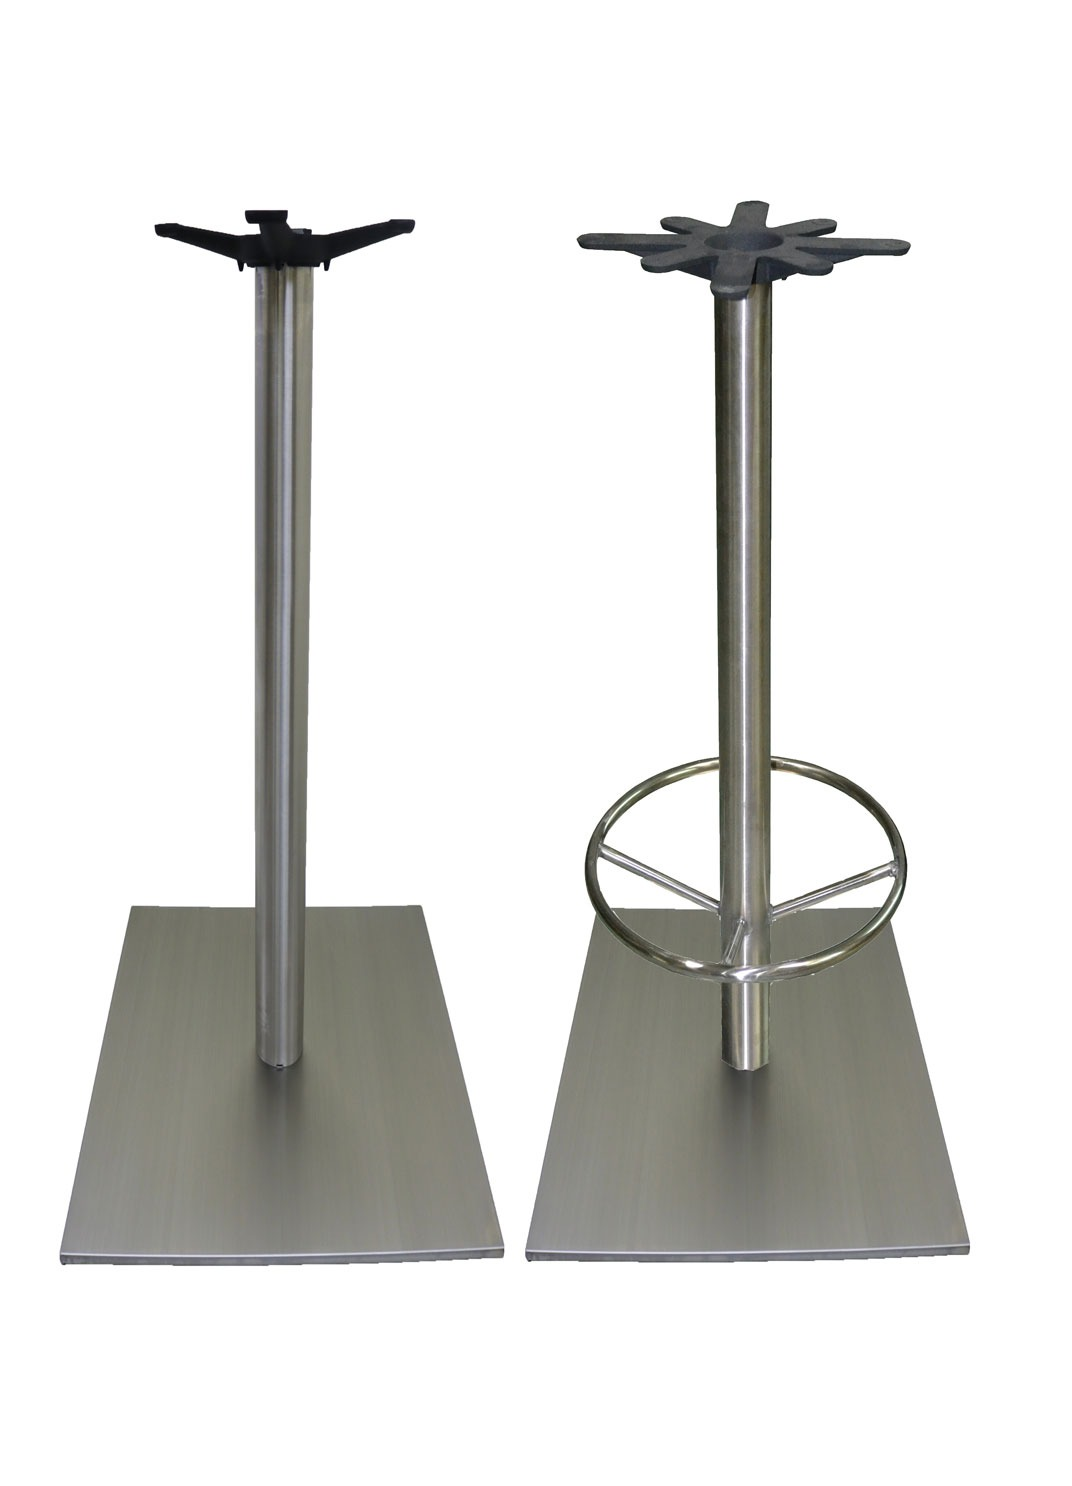 Stainless Restaurant Table Stainless Steel Bar Height Square With Round Column Restaurant